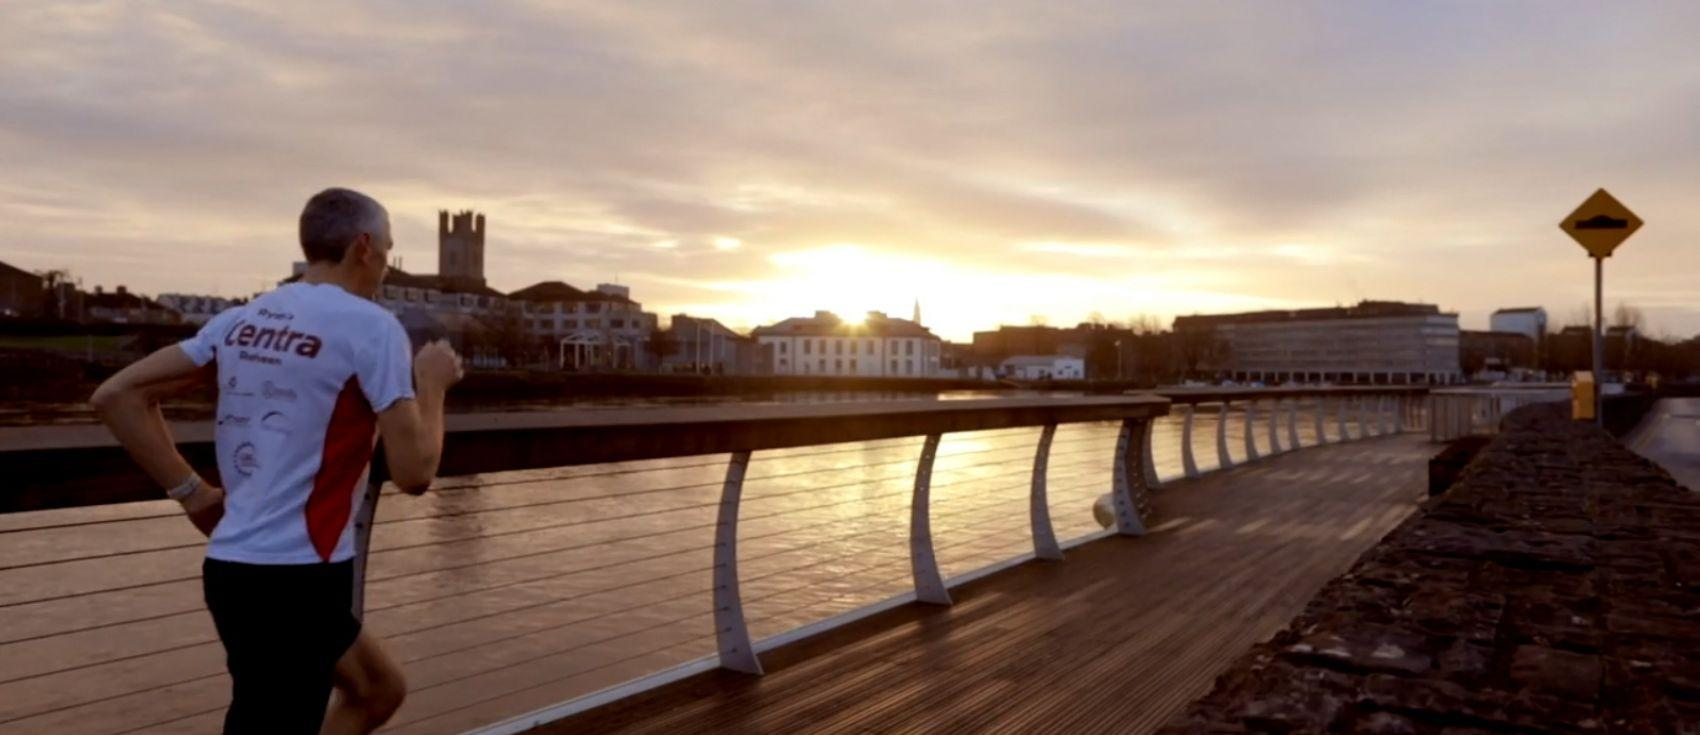 Discover Limerick on Foot